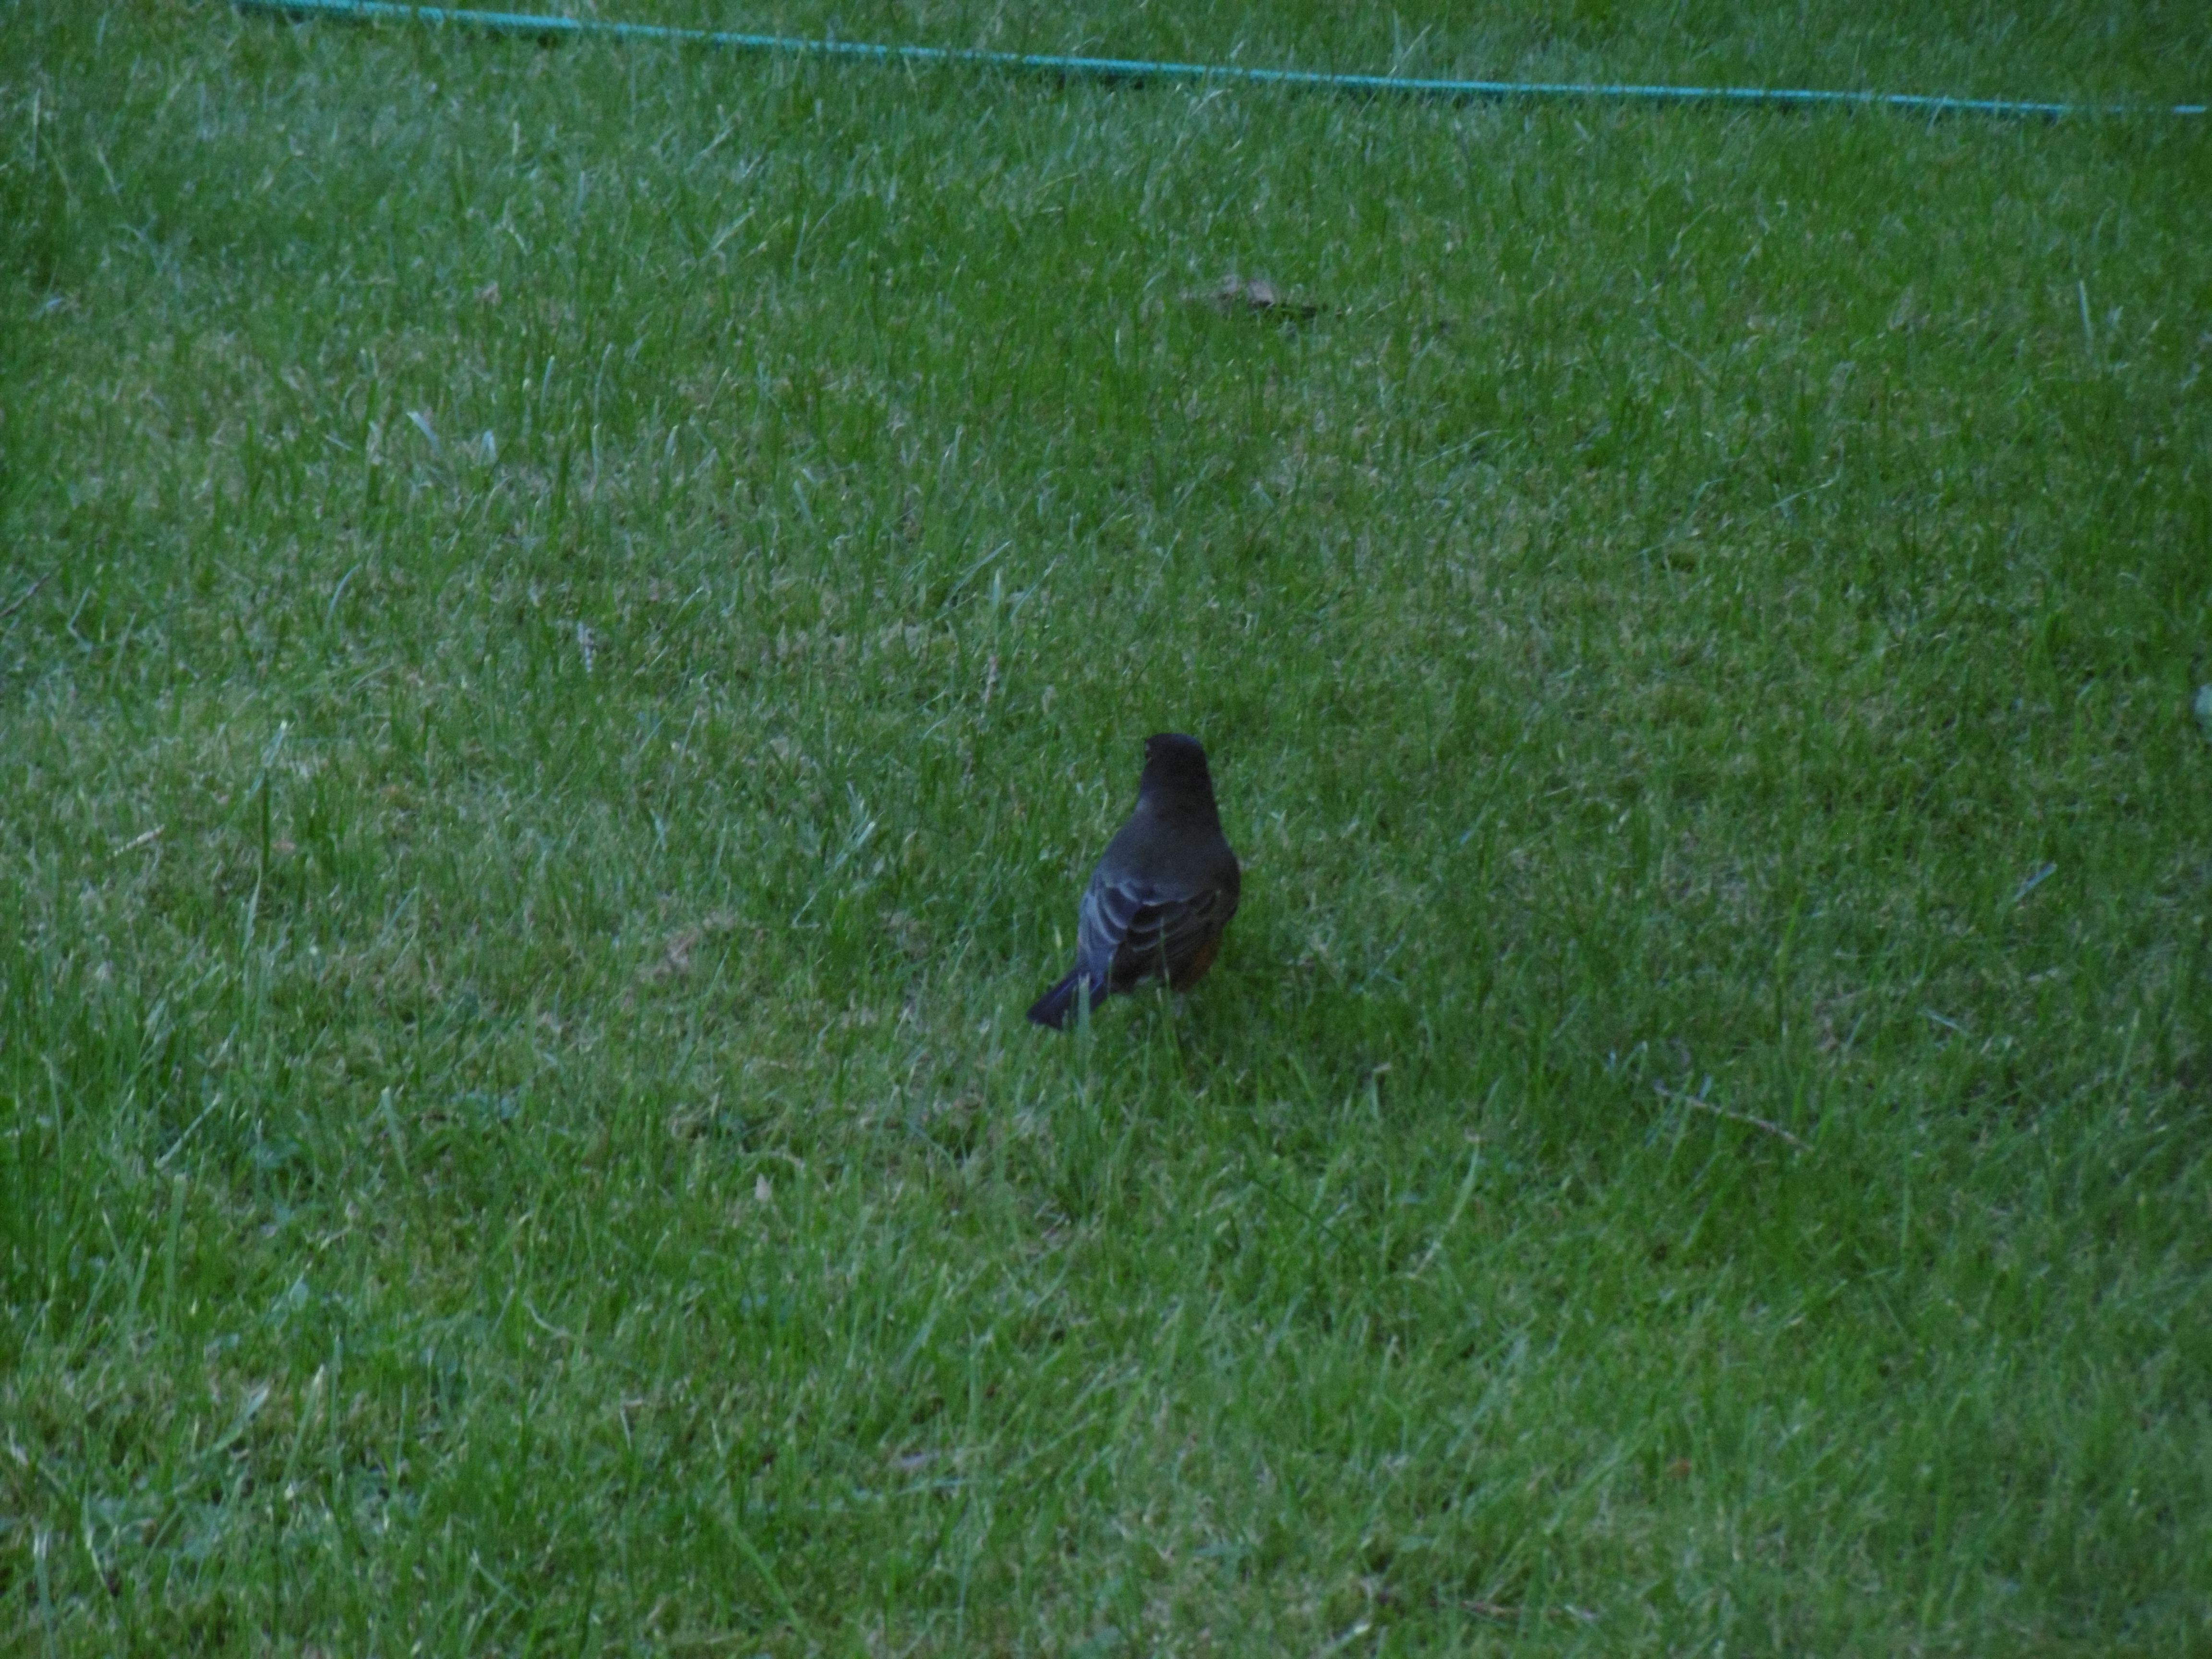 Back view of a small black songbird sitting on a lawn with several species of uneven grass